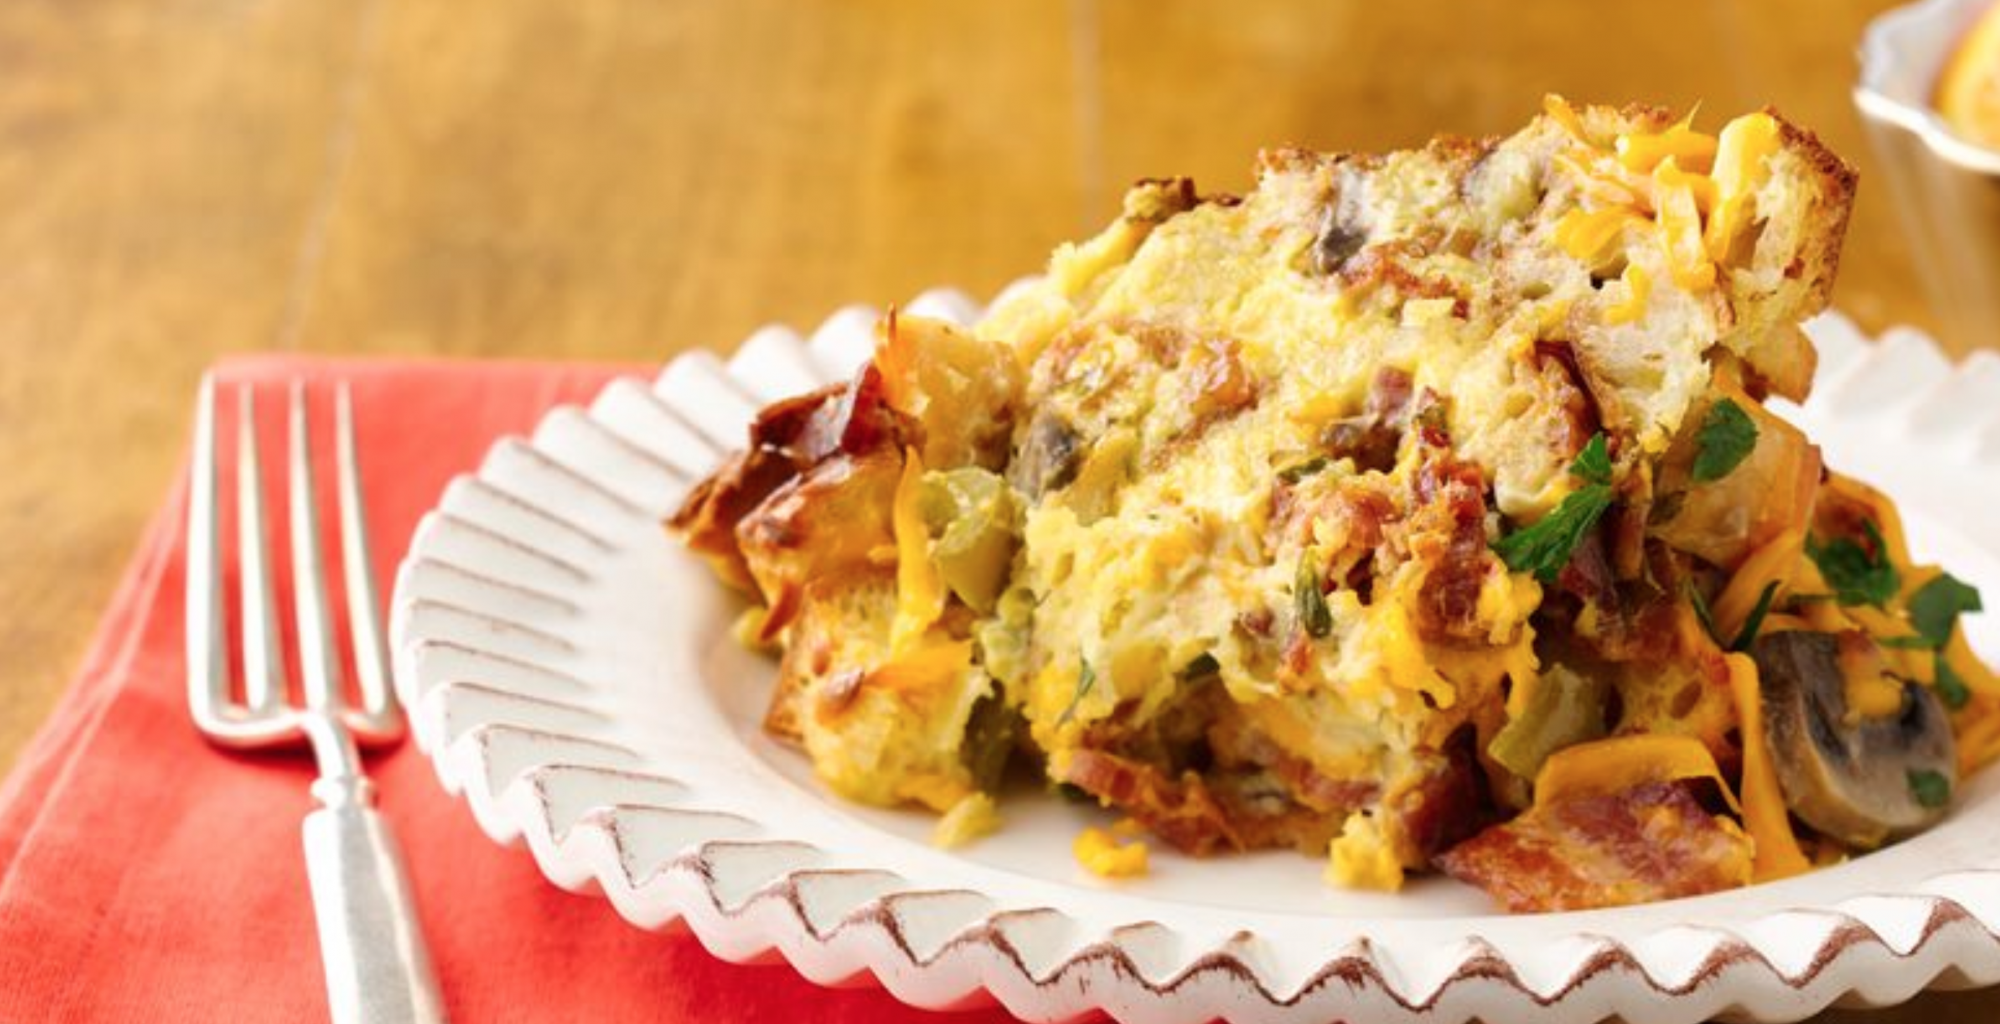 Bacon, Egg, & Cheddar Casserole